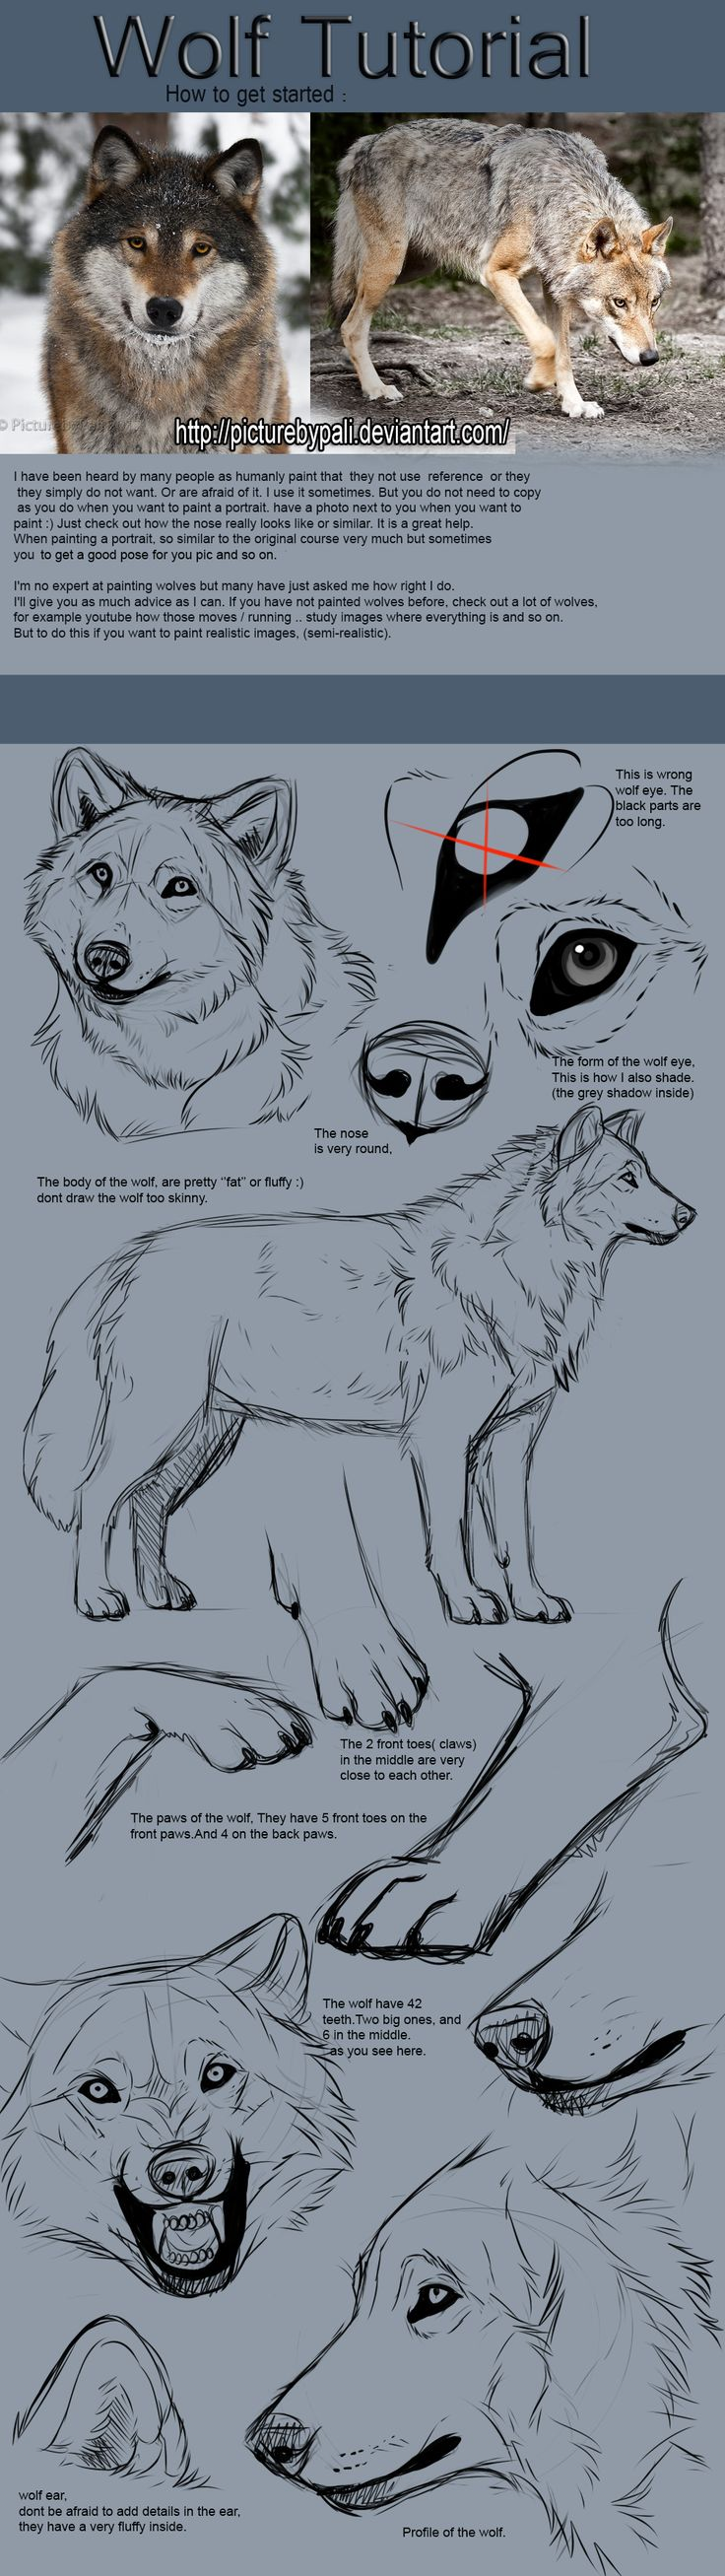 Wolf Tutorial By Themysticwolf On Deviantart Much Need Much Want